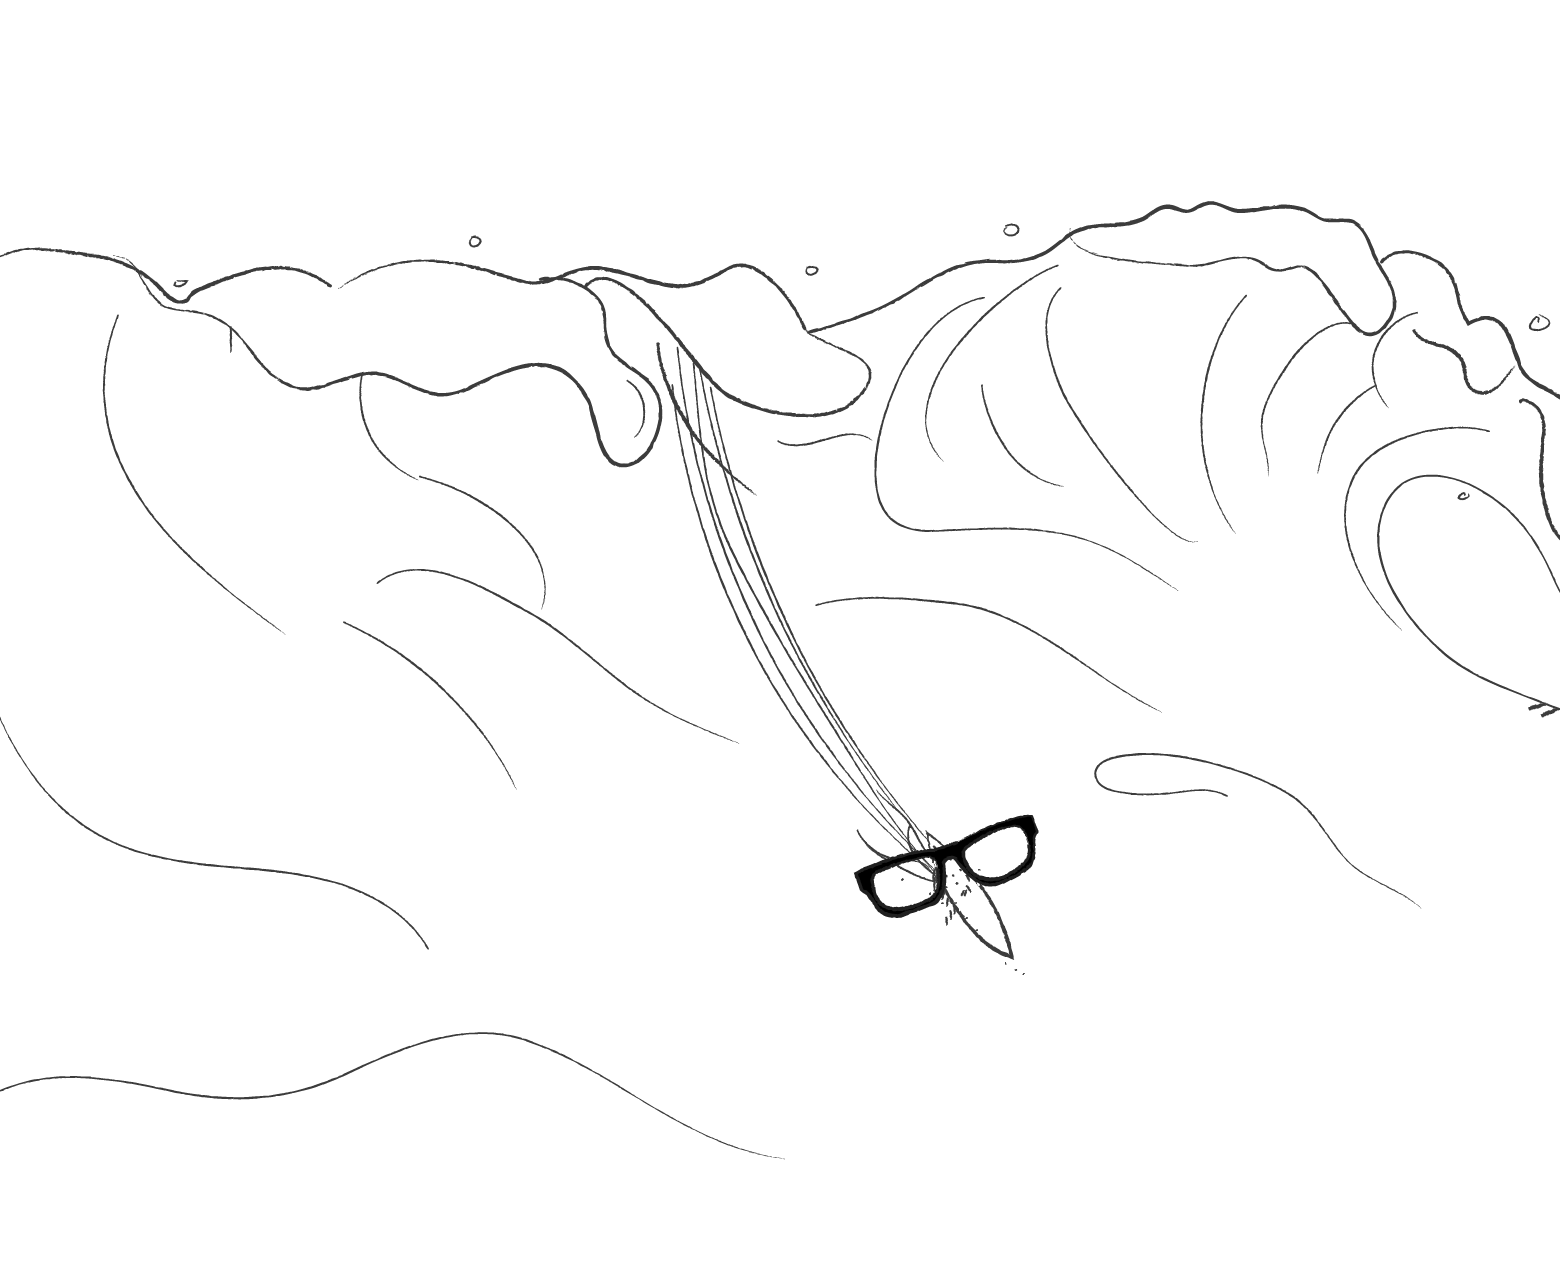 An illustration of a pair of thick rimmed glasses on a surfboard going down a giant wave.